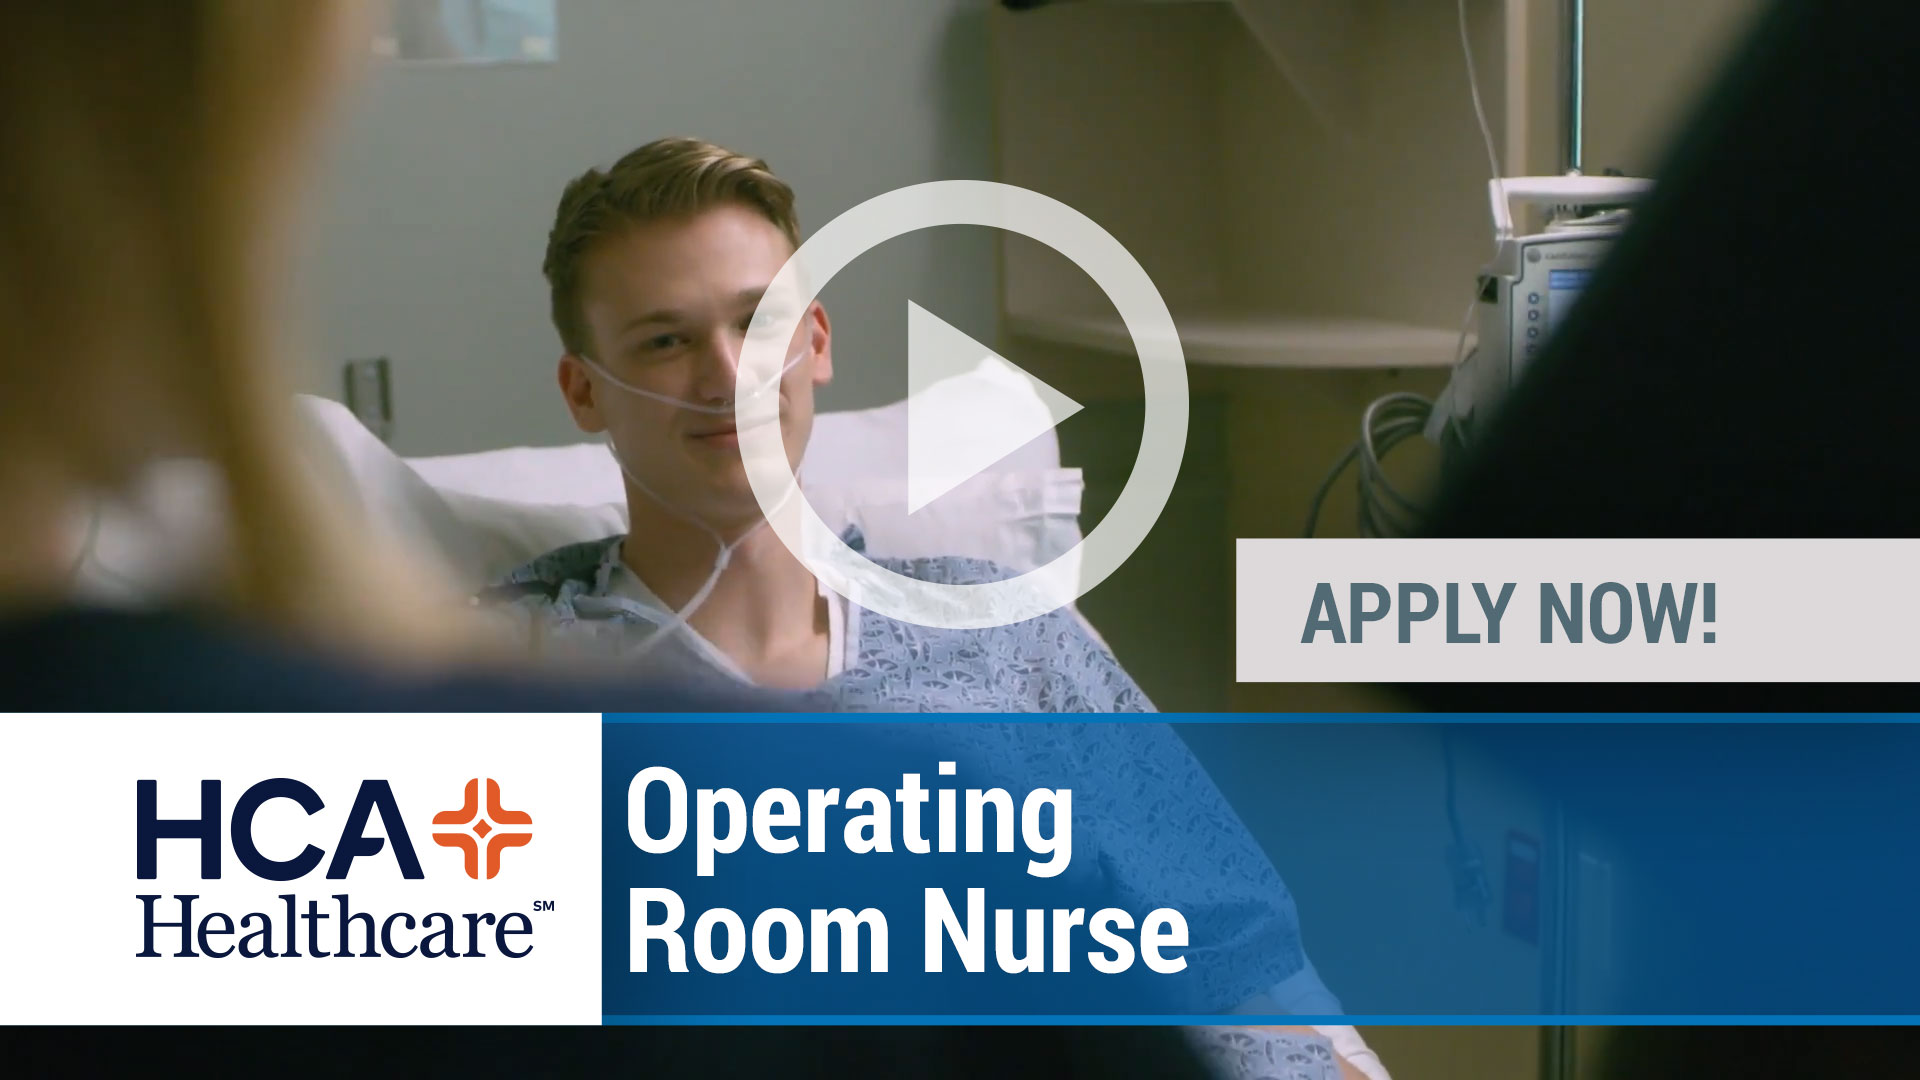 Watch our careers video for available job opening Operating Room Nurse in Texas City, Texas